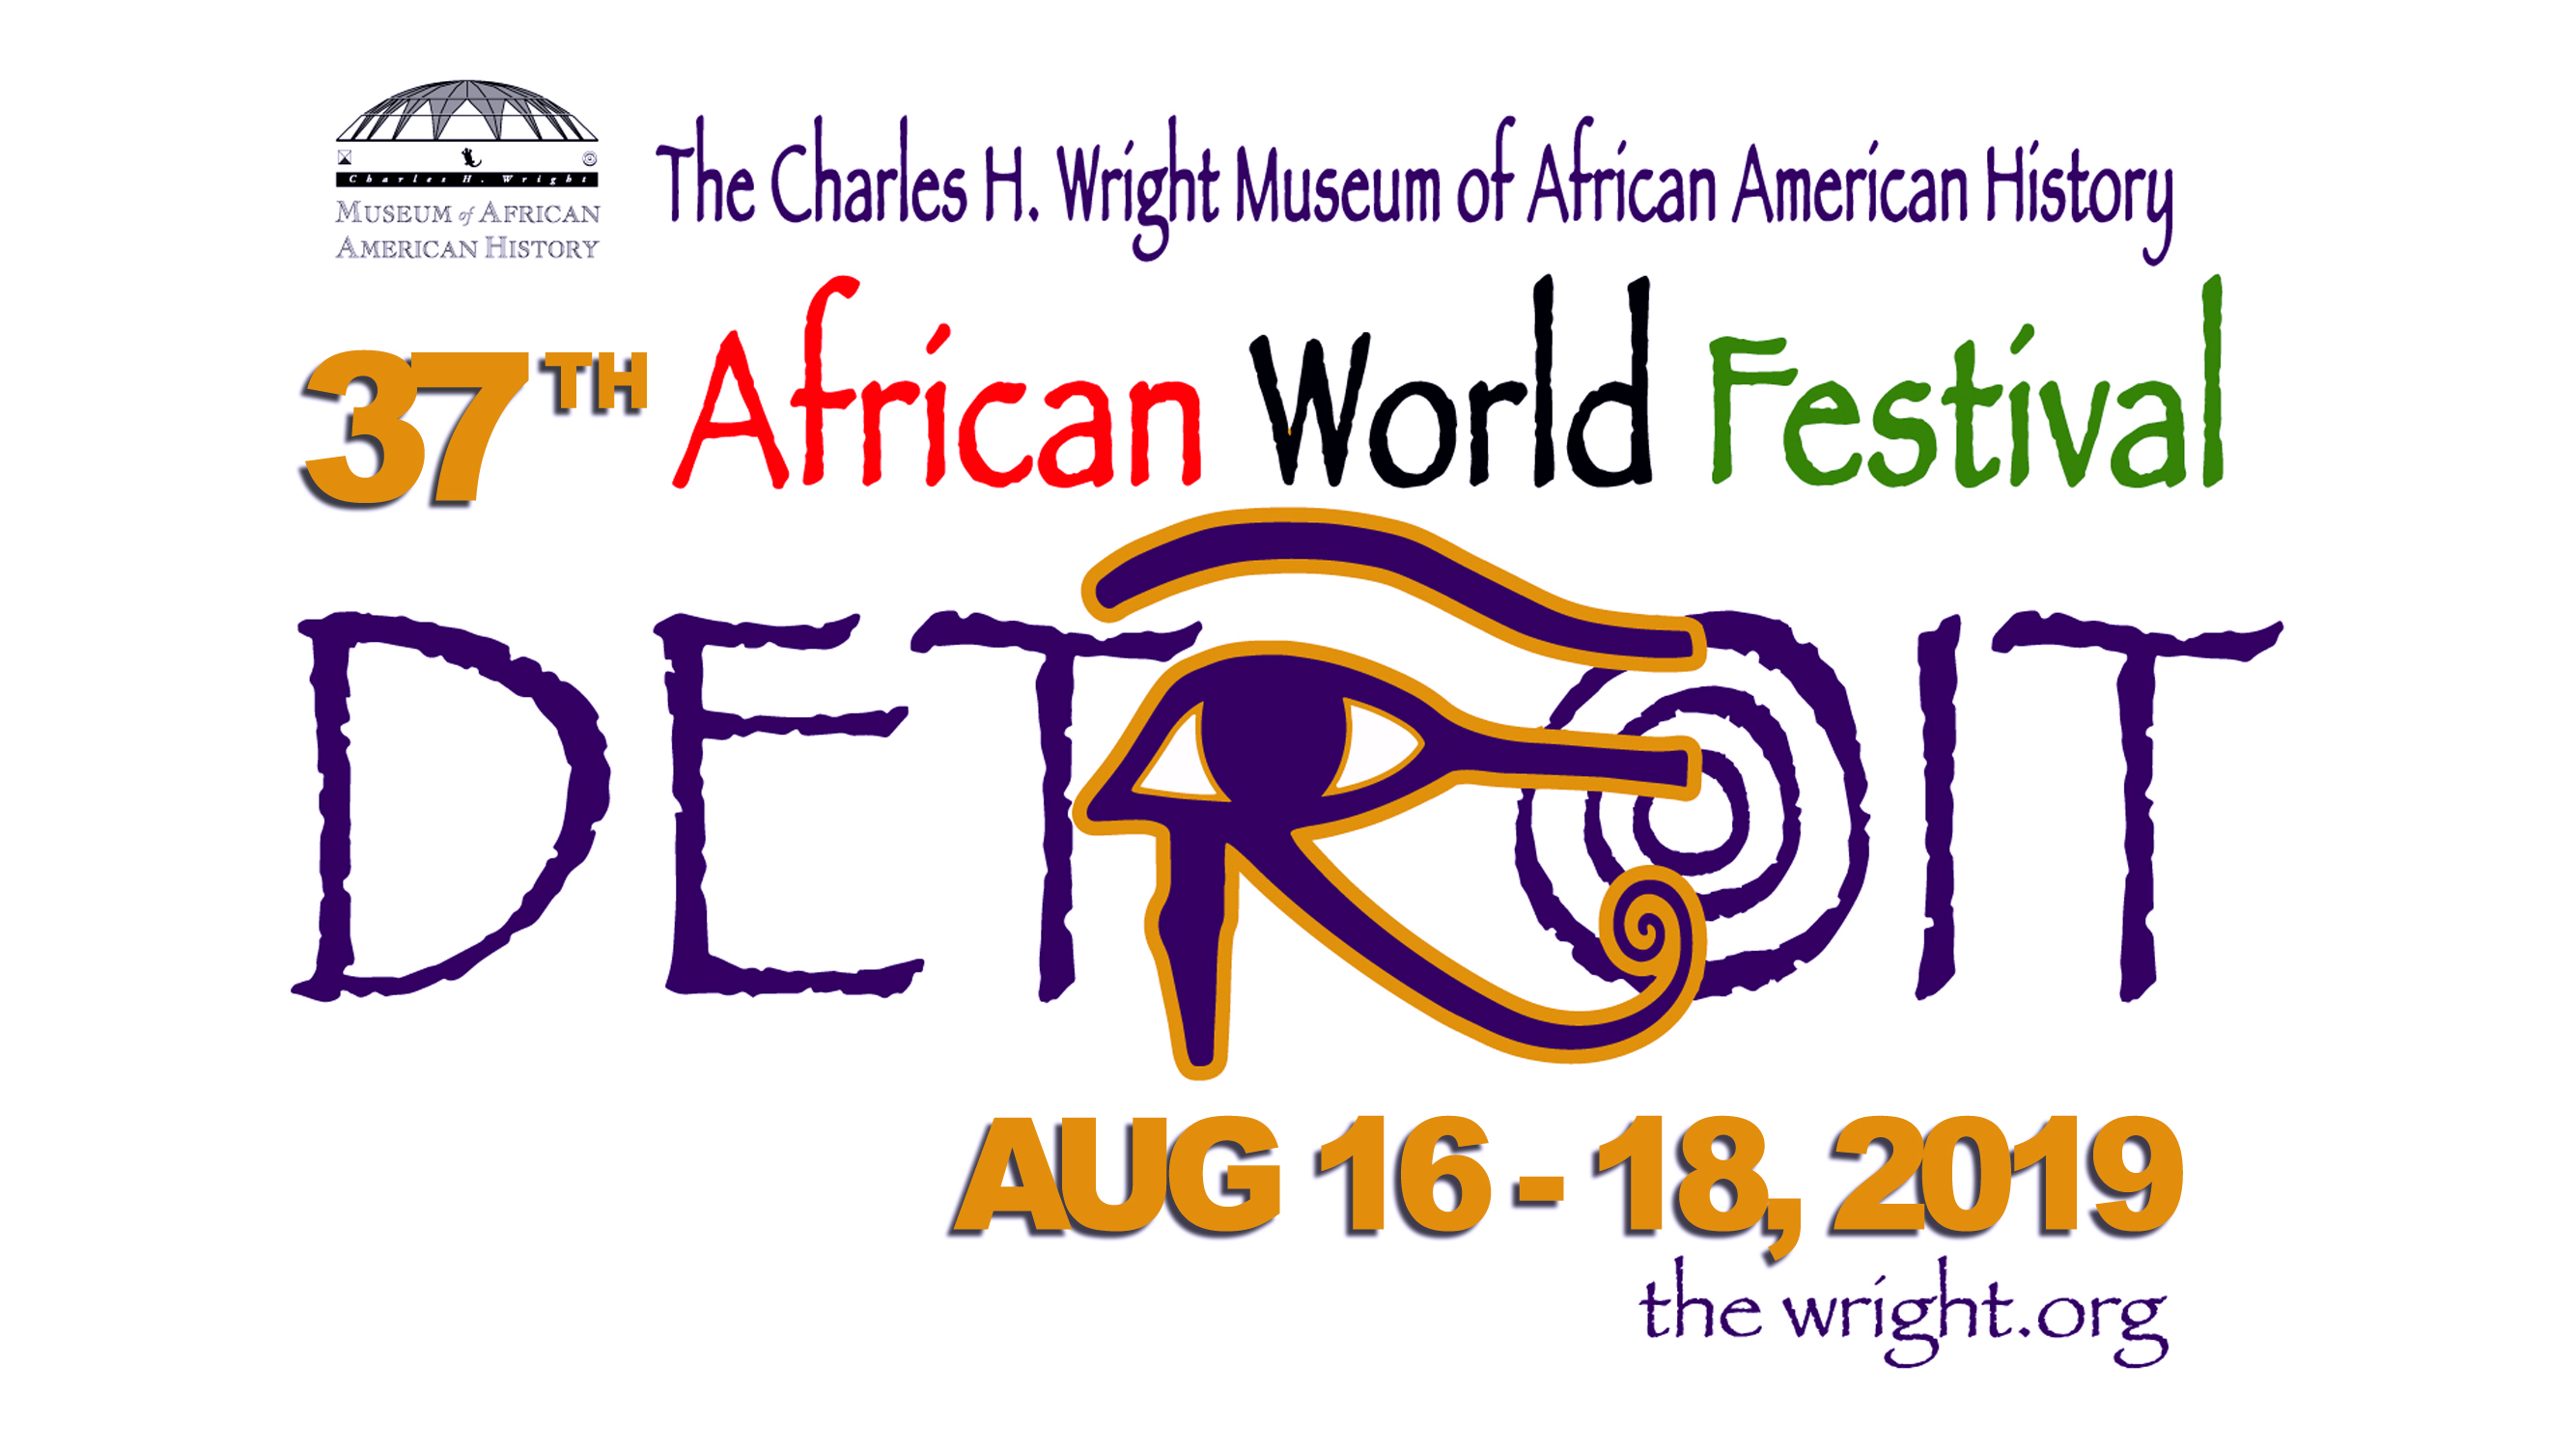 37th annual African World Festival